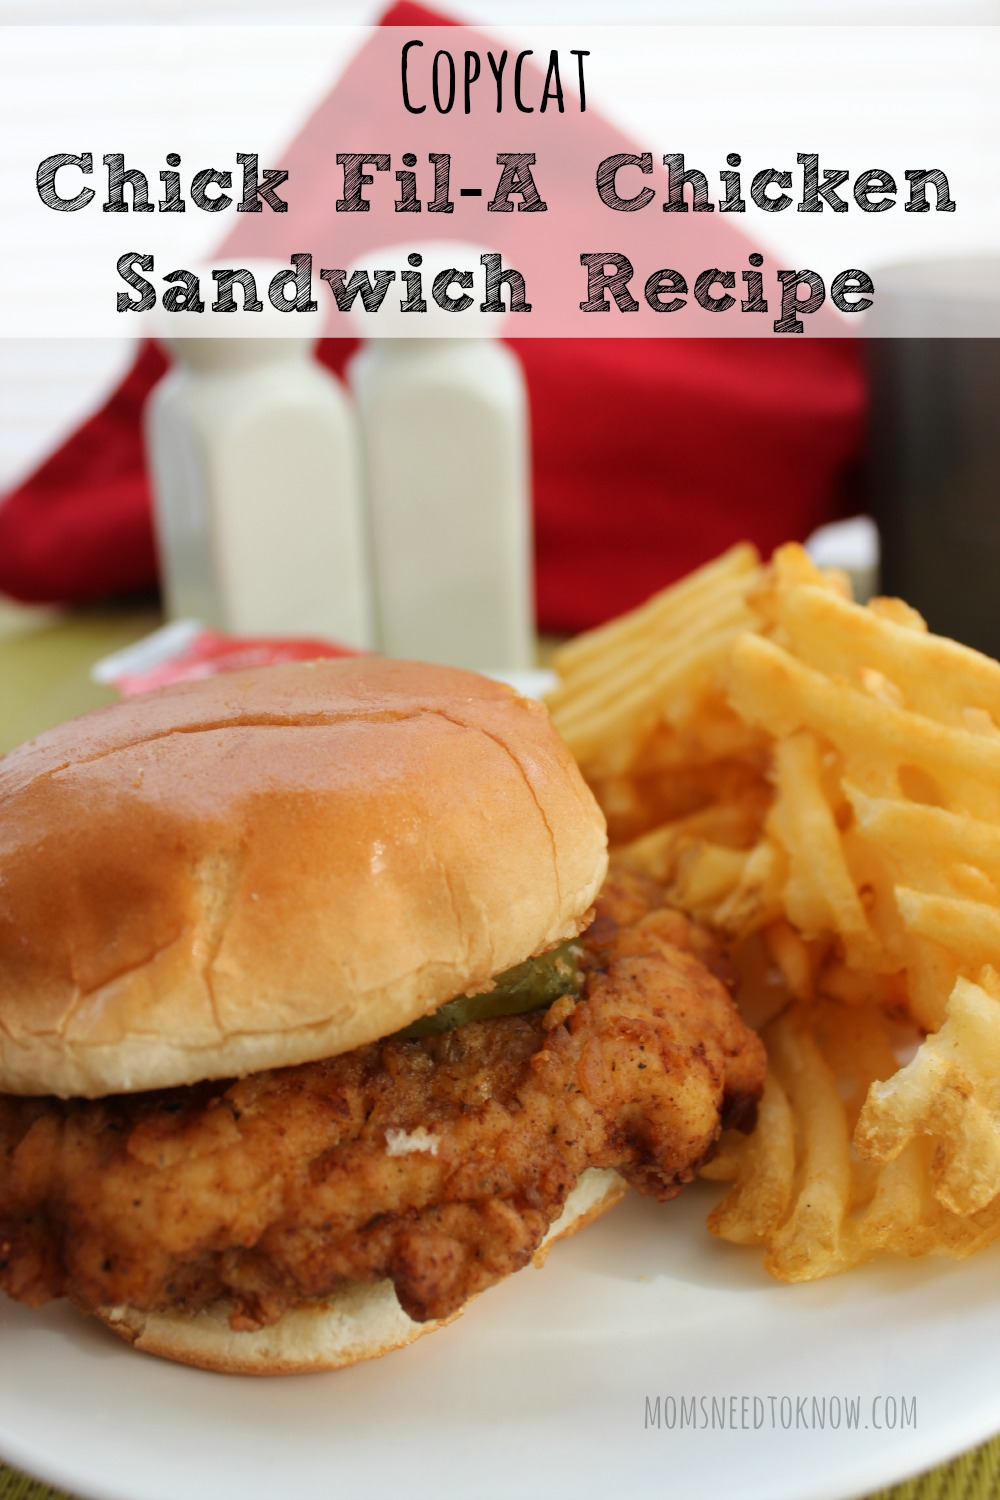 Get the delicious taste of Chick Fil'A any day of the week (even Sunday) with this copycat Chick Fil'A Chicken Sandwich recipe!